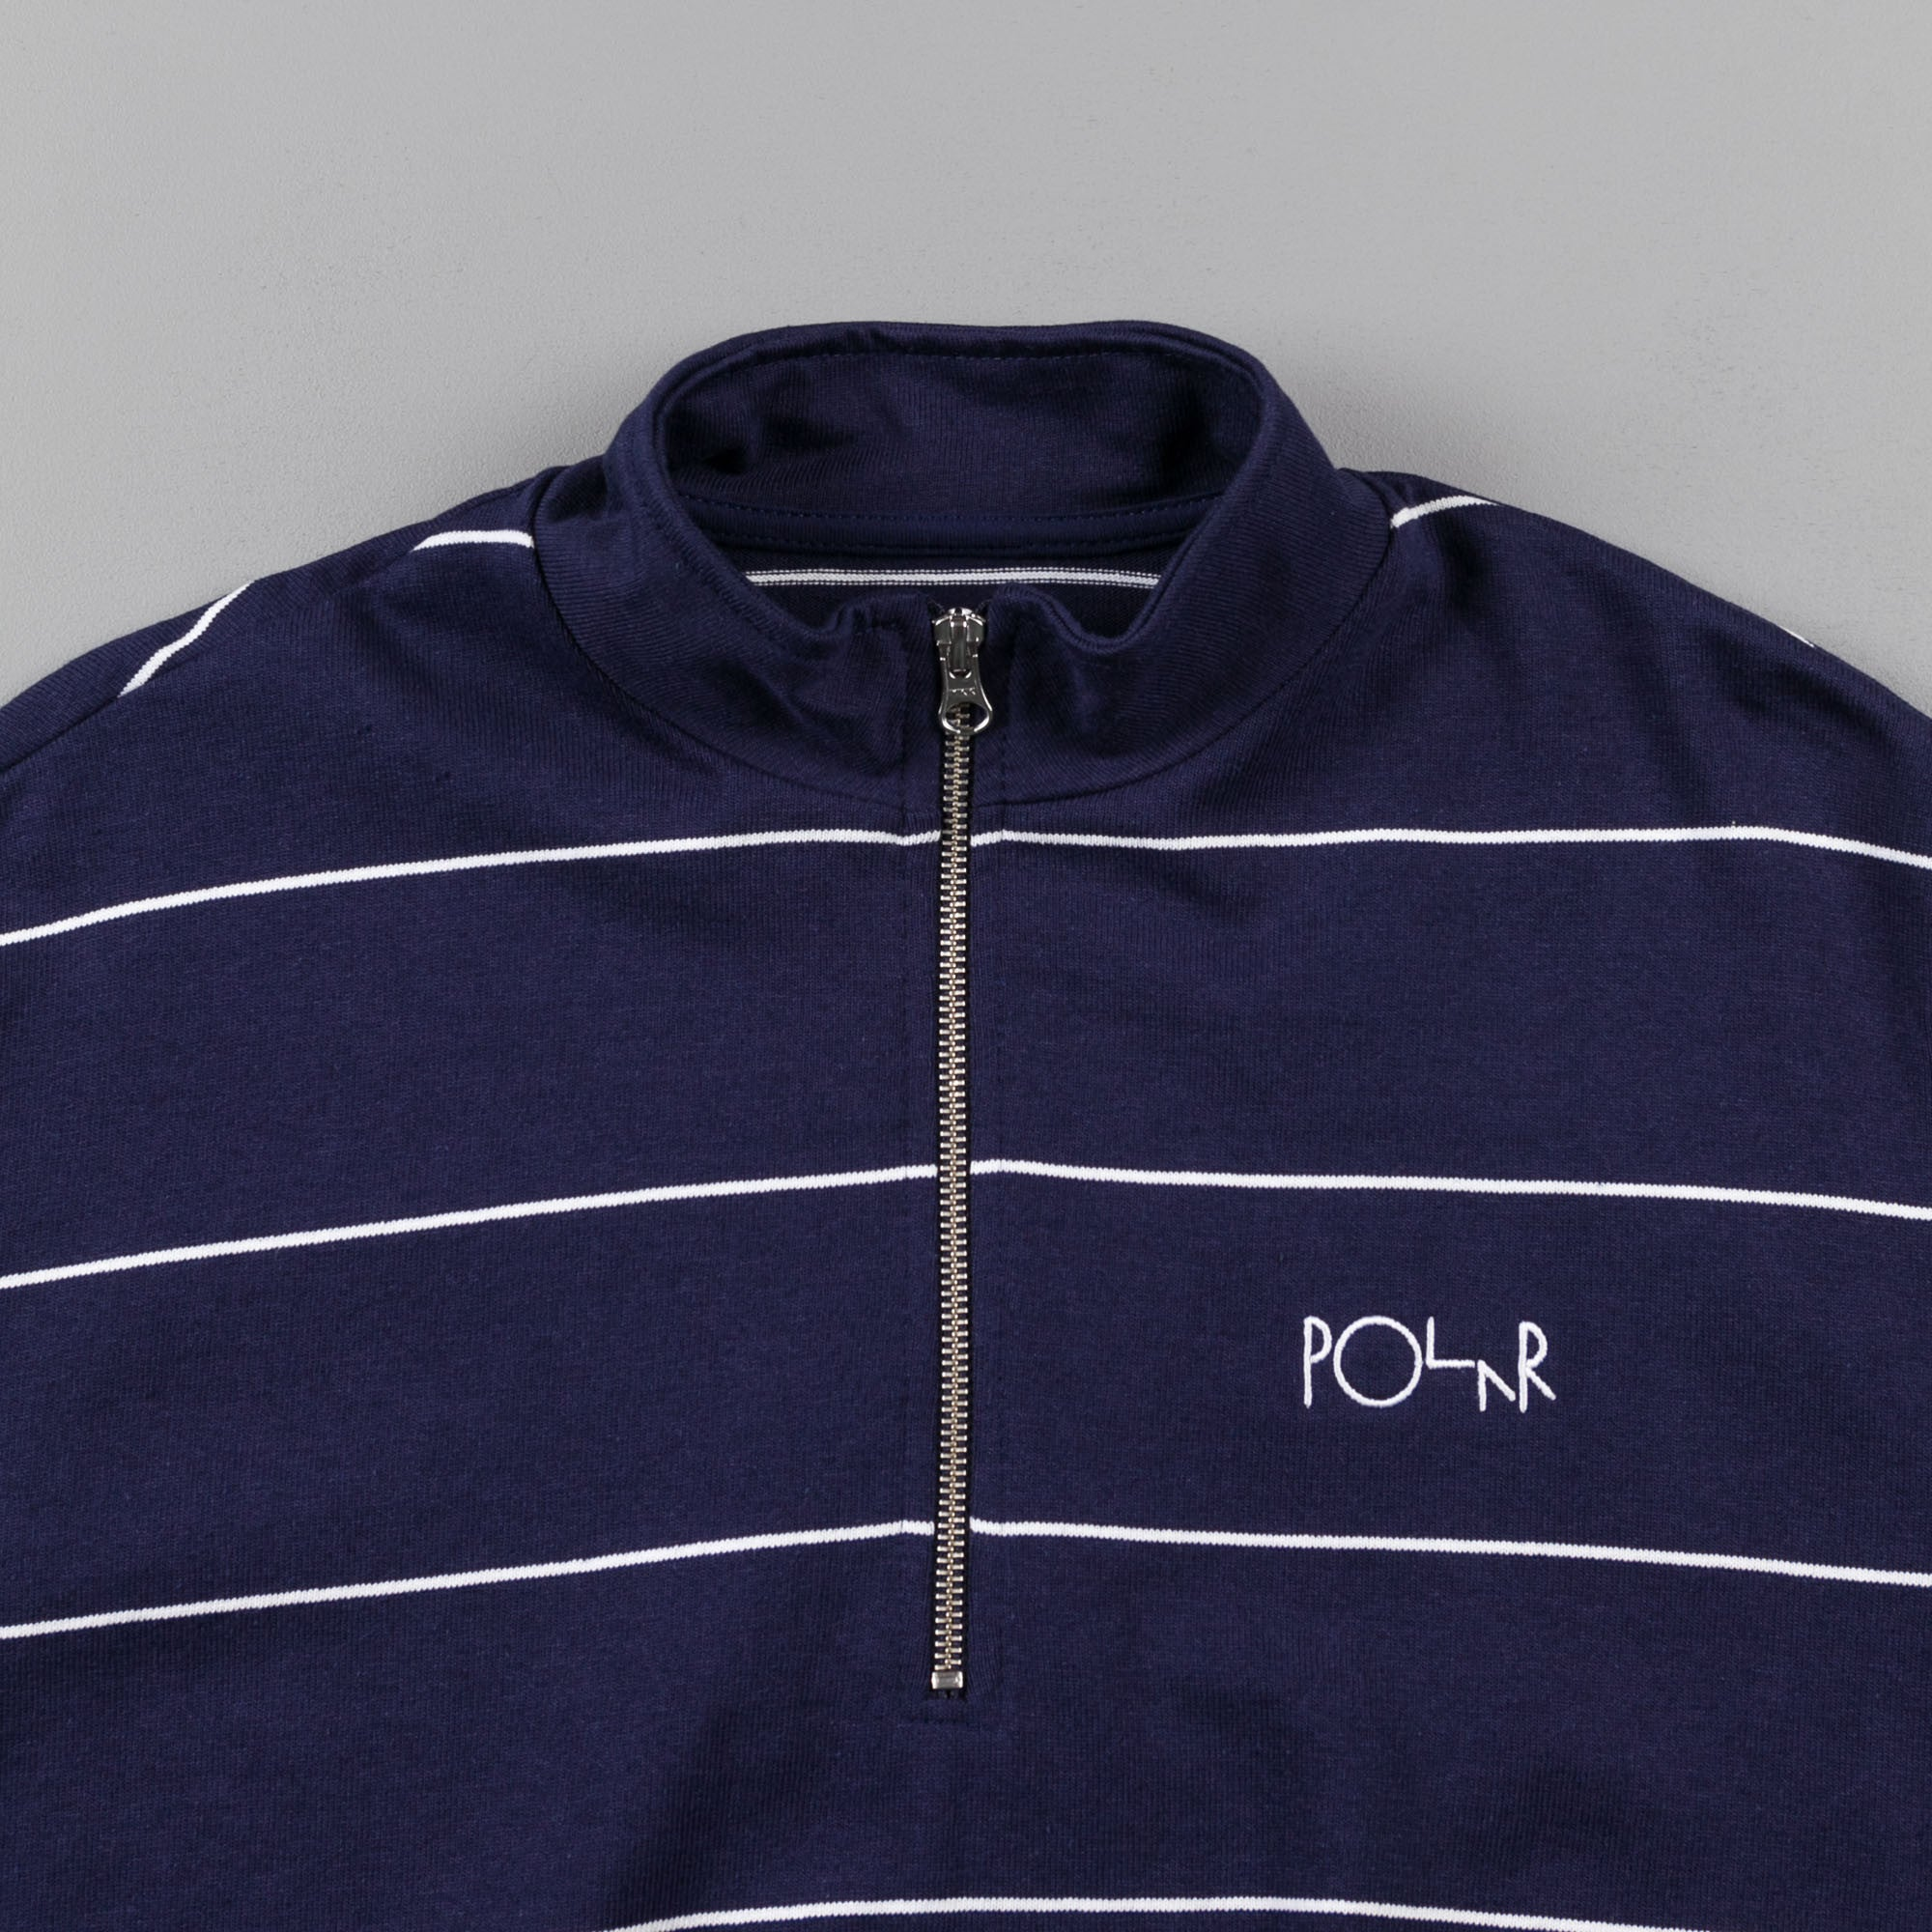 Polar Striped Zip Neck Sweatshirt - Navy